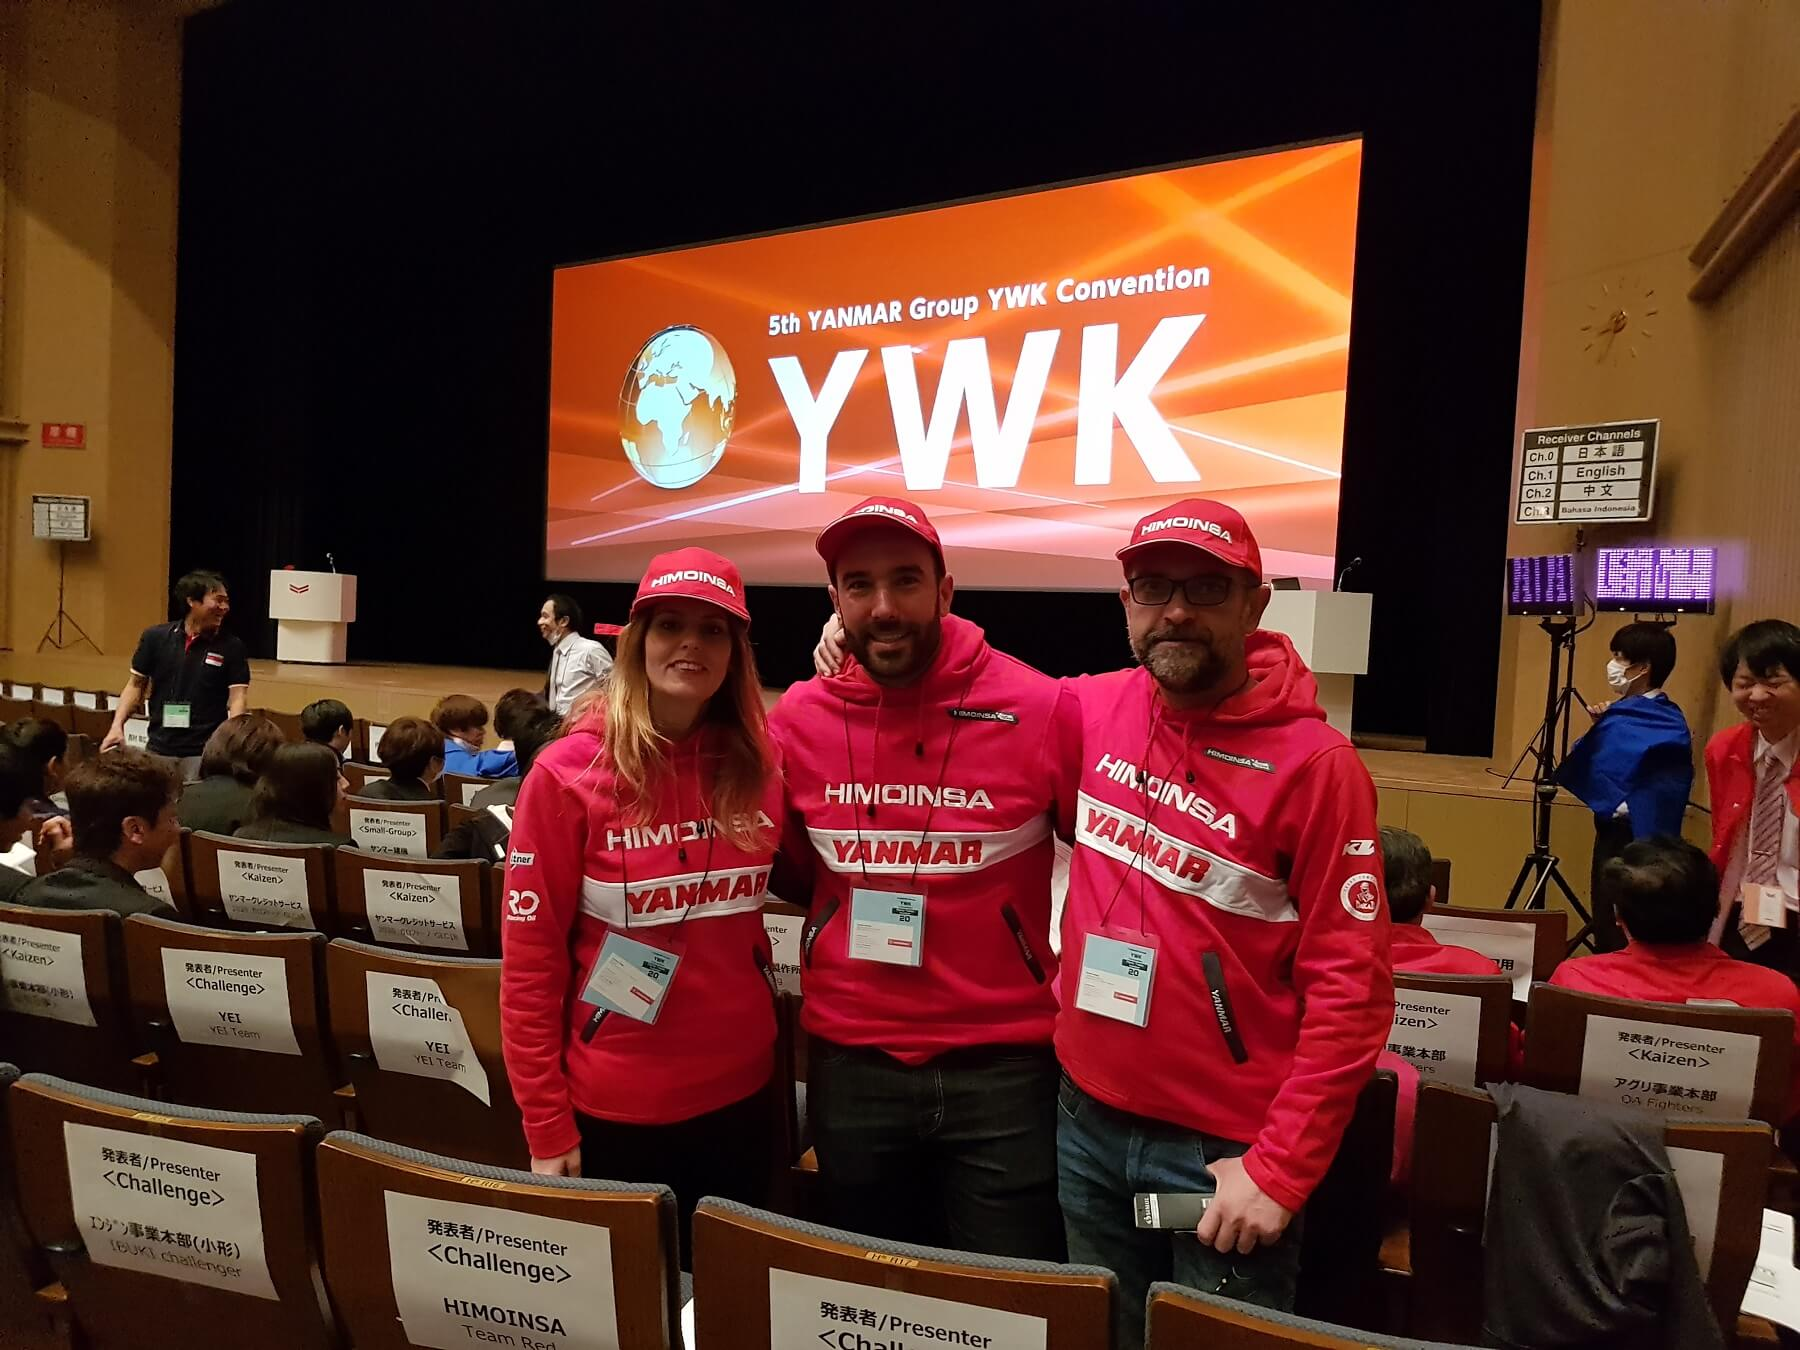 RED, finaliste à la 5e édition de la Convention YWK du Groupe YANMAR